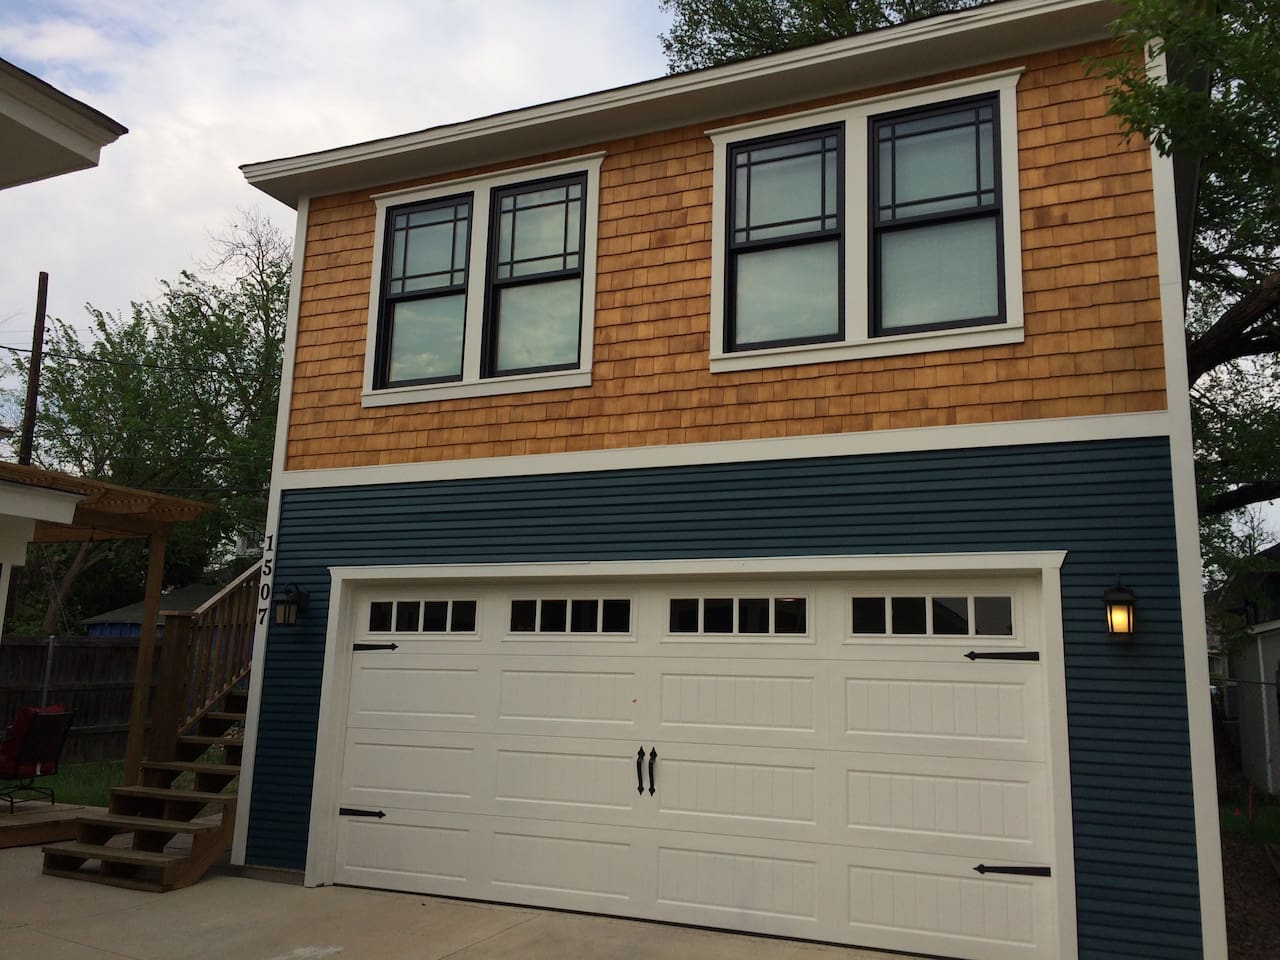 Garage apartment is on the second floor above garage.